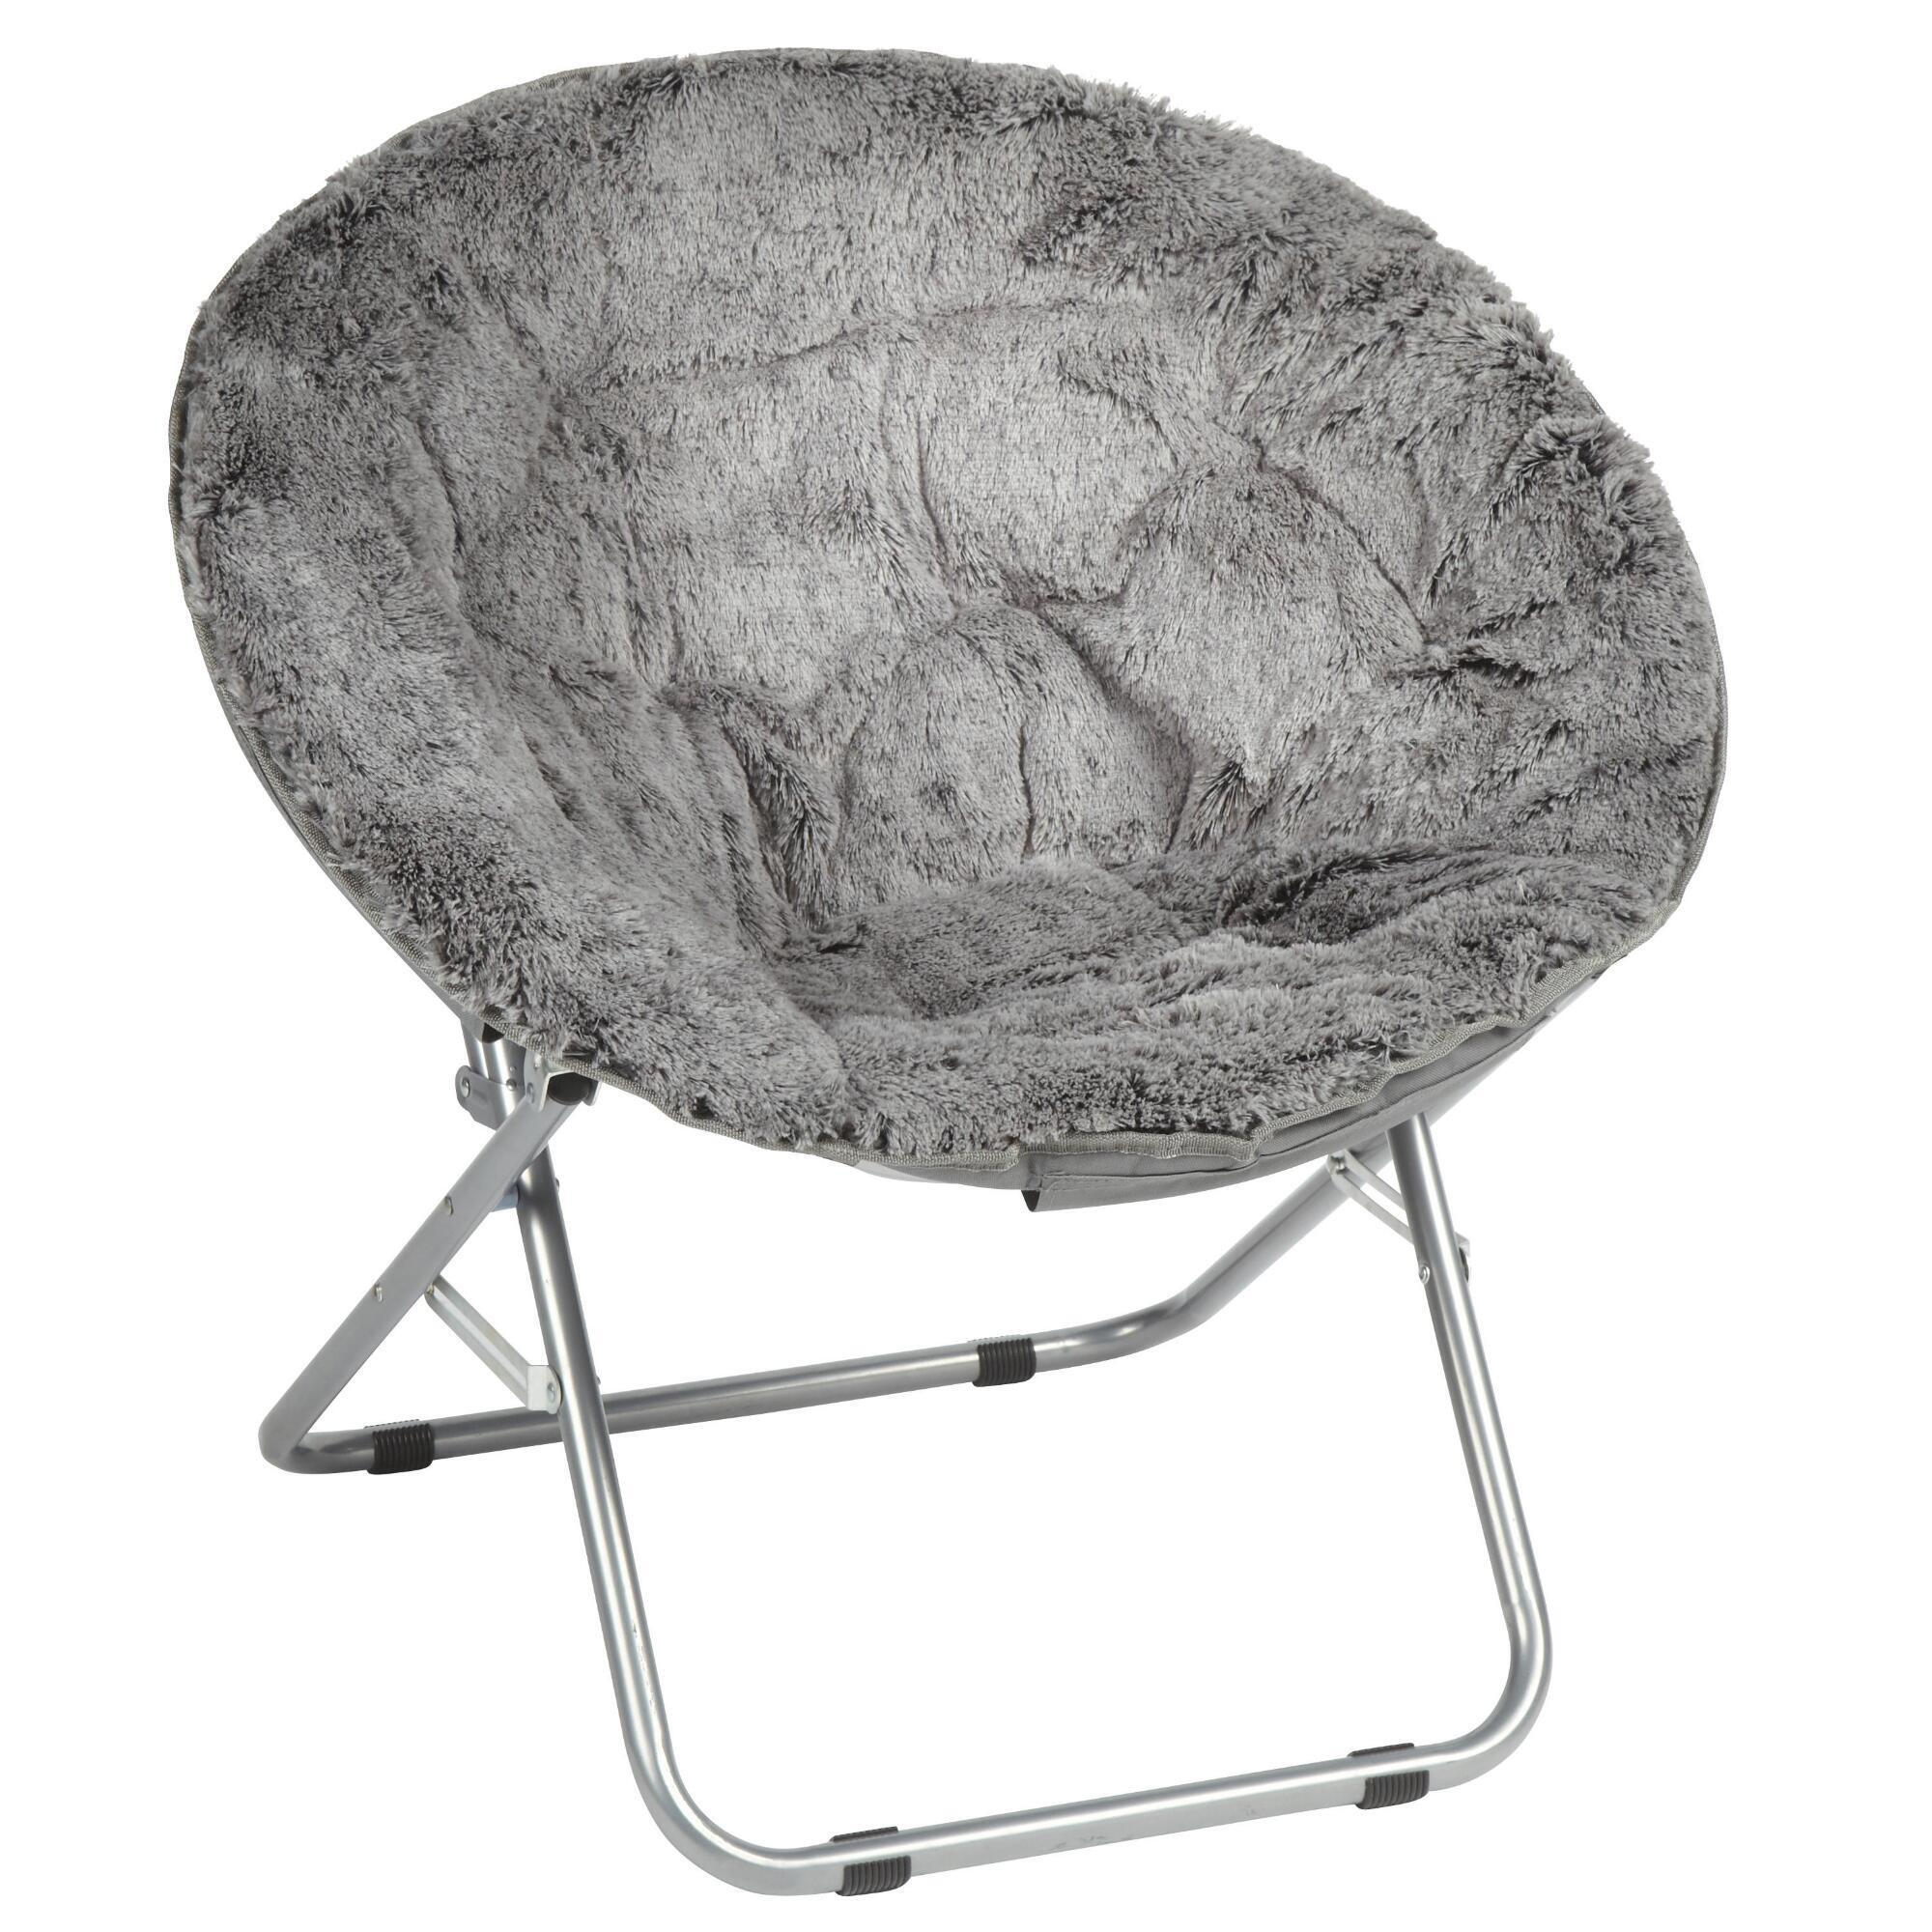 Gray Faux Fur Saucer Chair Christmas Tree Shops And That Home Decor Furniture Gifts Store